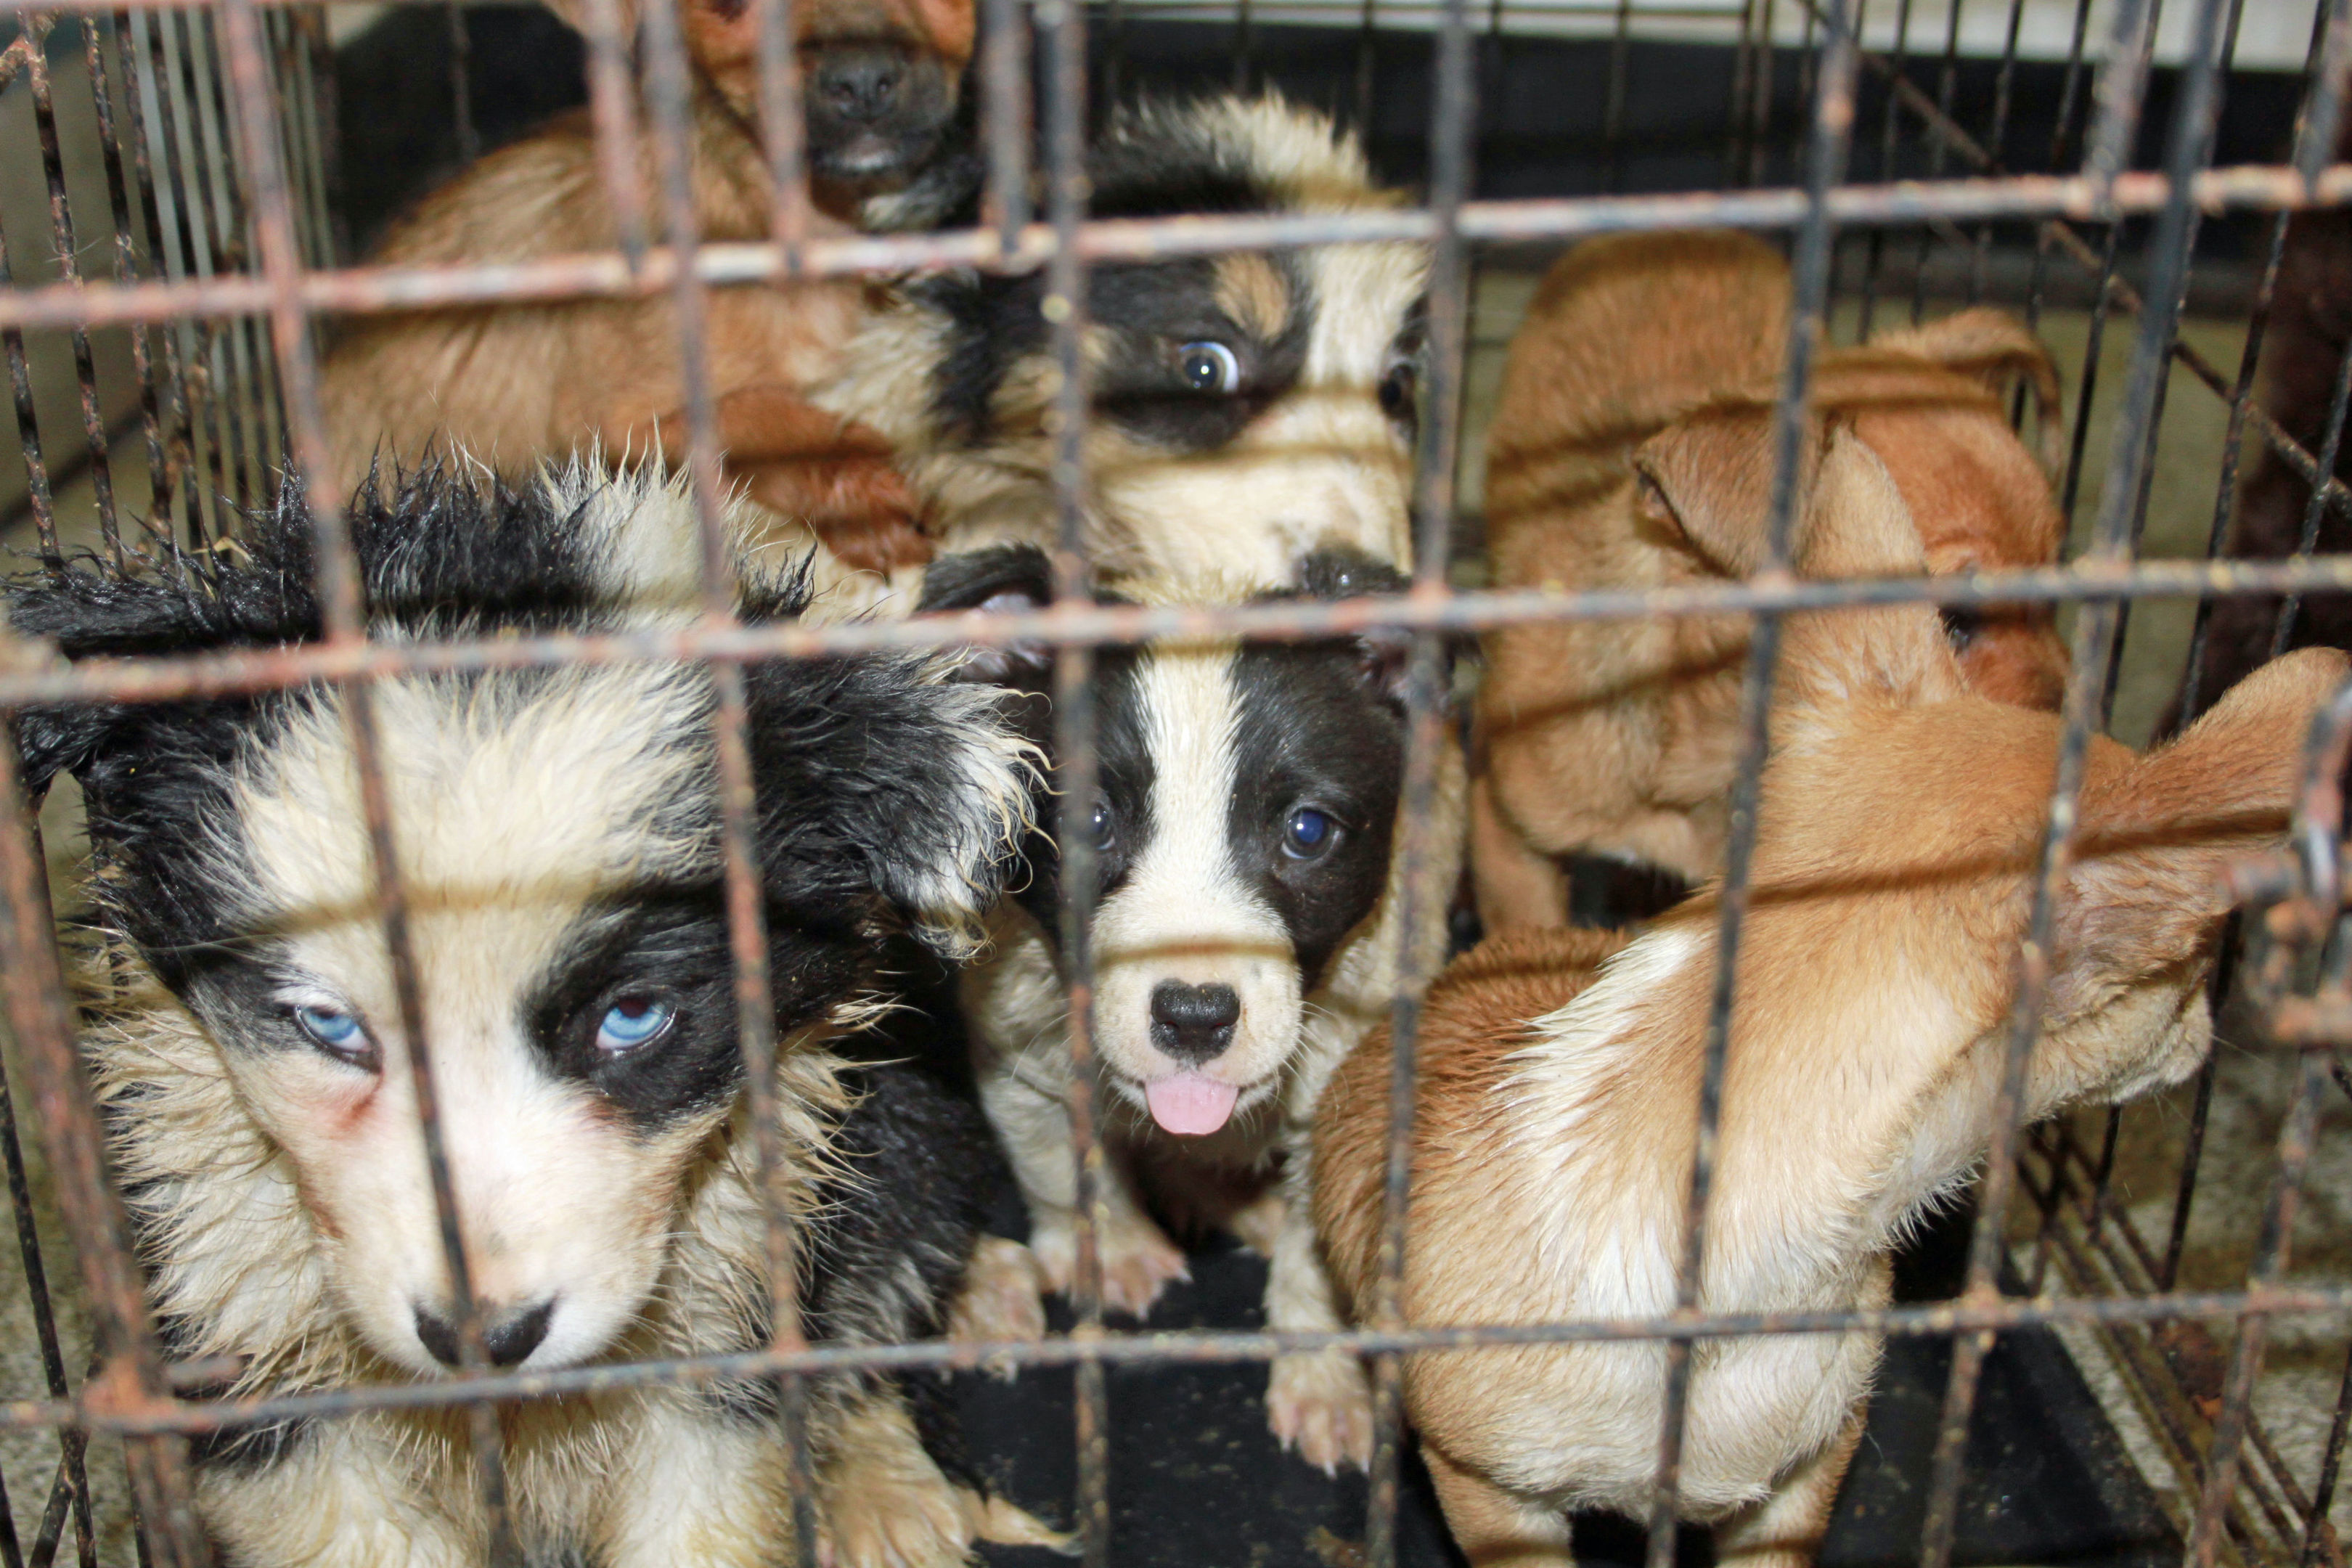 Some of the puppies that were seized by animal inspectors at Cairnryan.